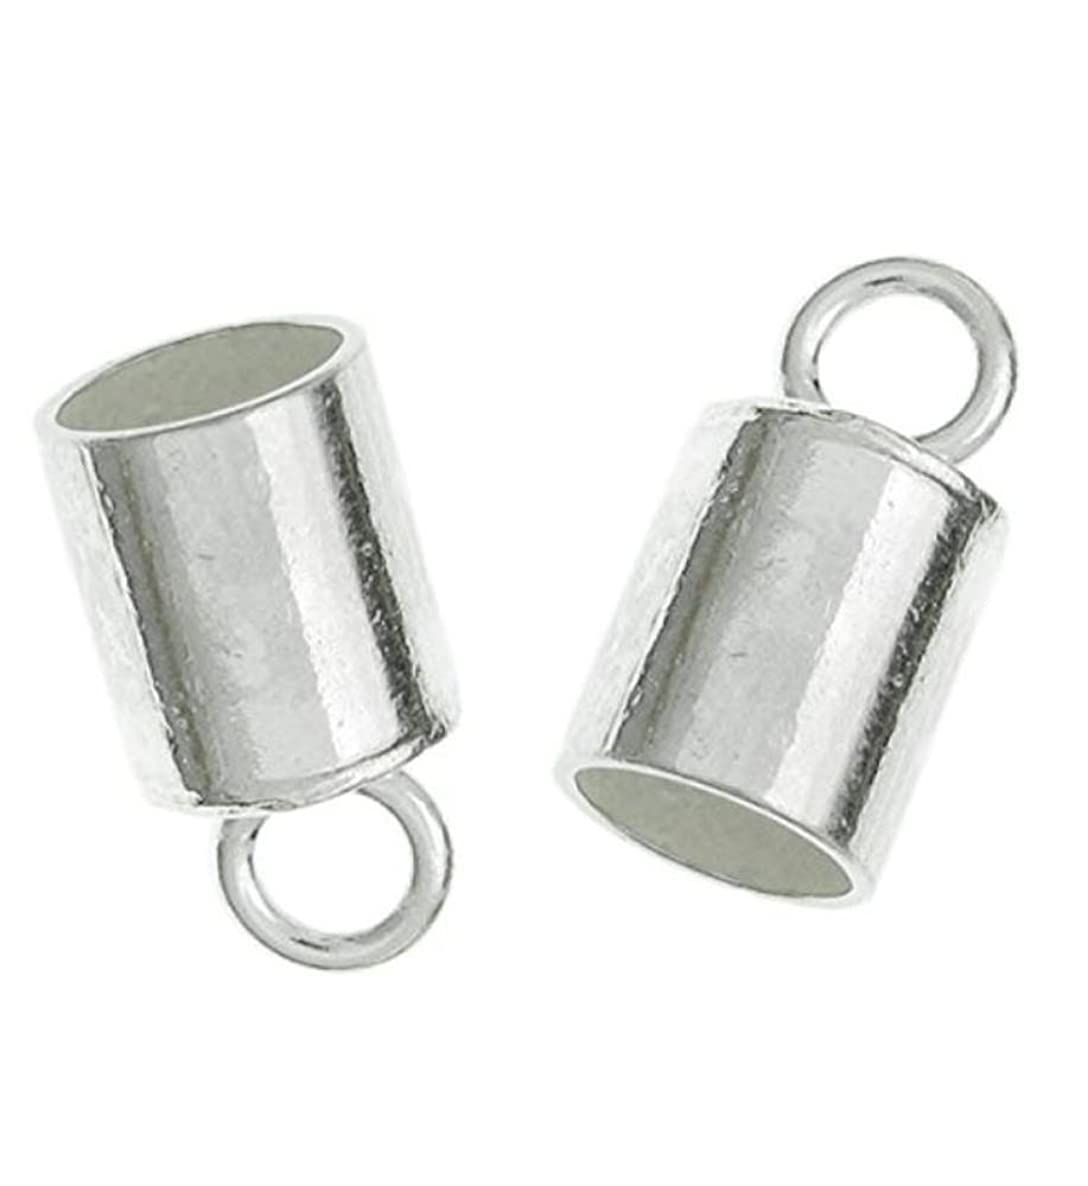 30pcs Sterling Silver Cord Ends Endcap End Caps Barrel for 2.5mm to 3mm Cord Beading Wire Jewelry Craft Making SS247